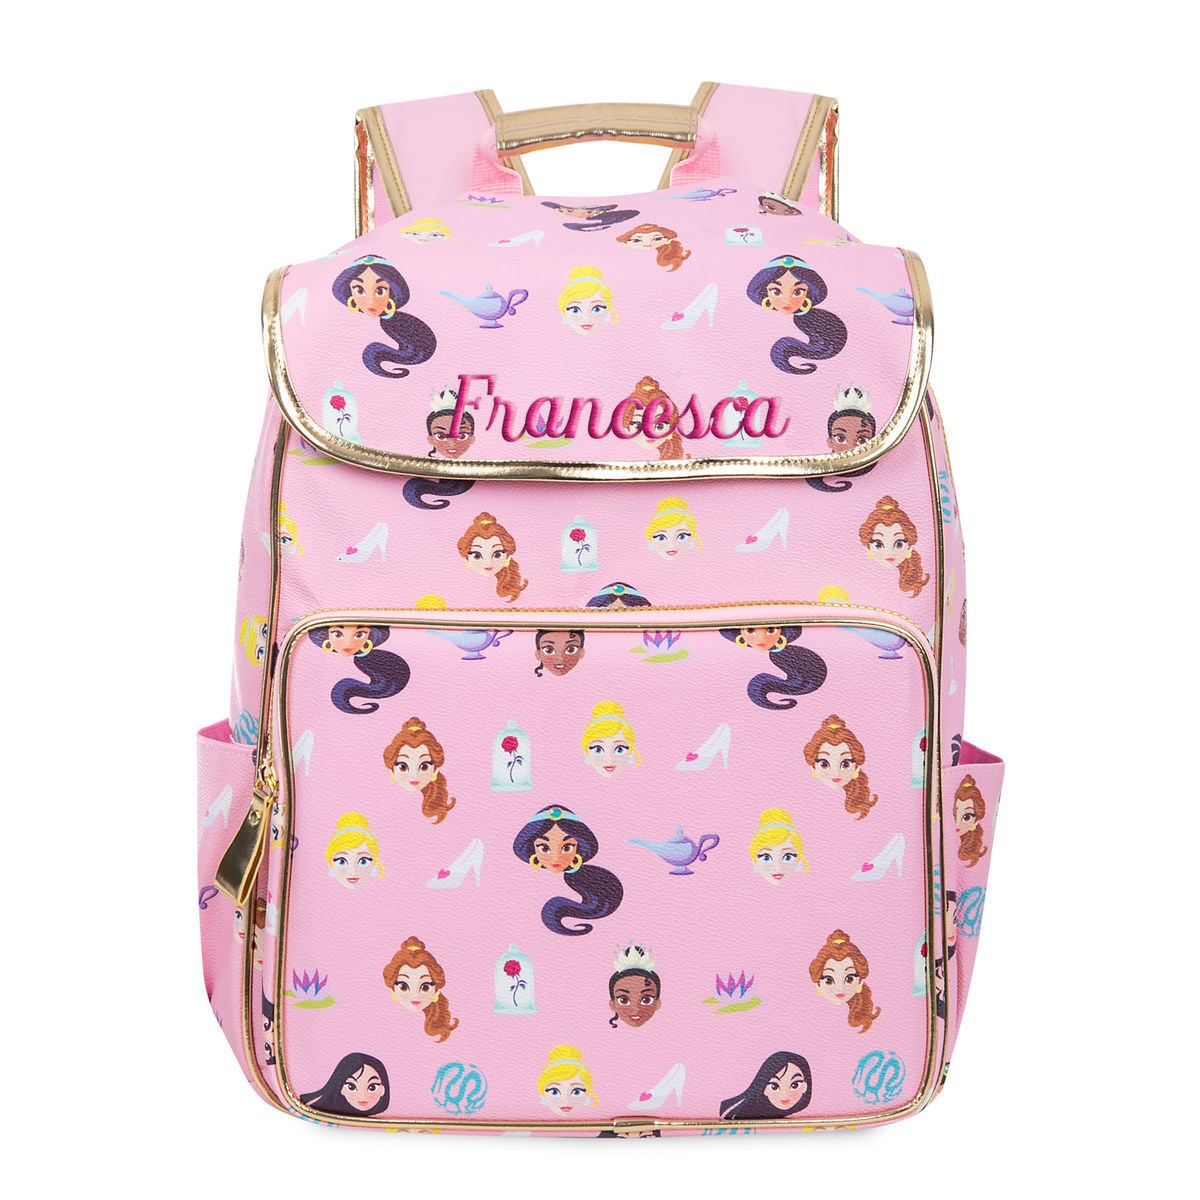 78ca3330cf19 Product Image of Disney Princess Backpack - Personalizable   1